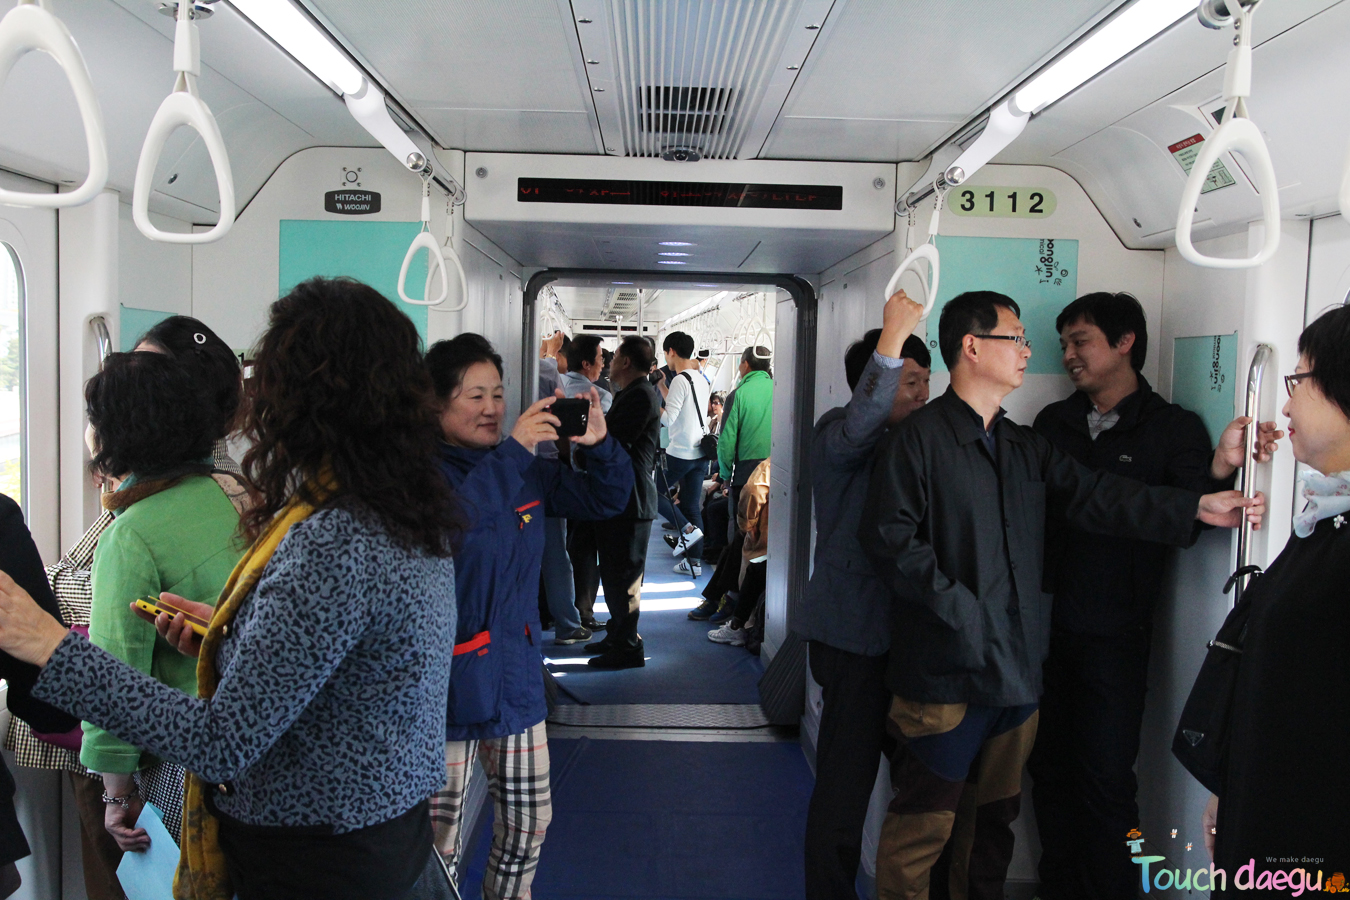 The interior of the monorail